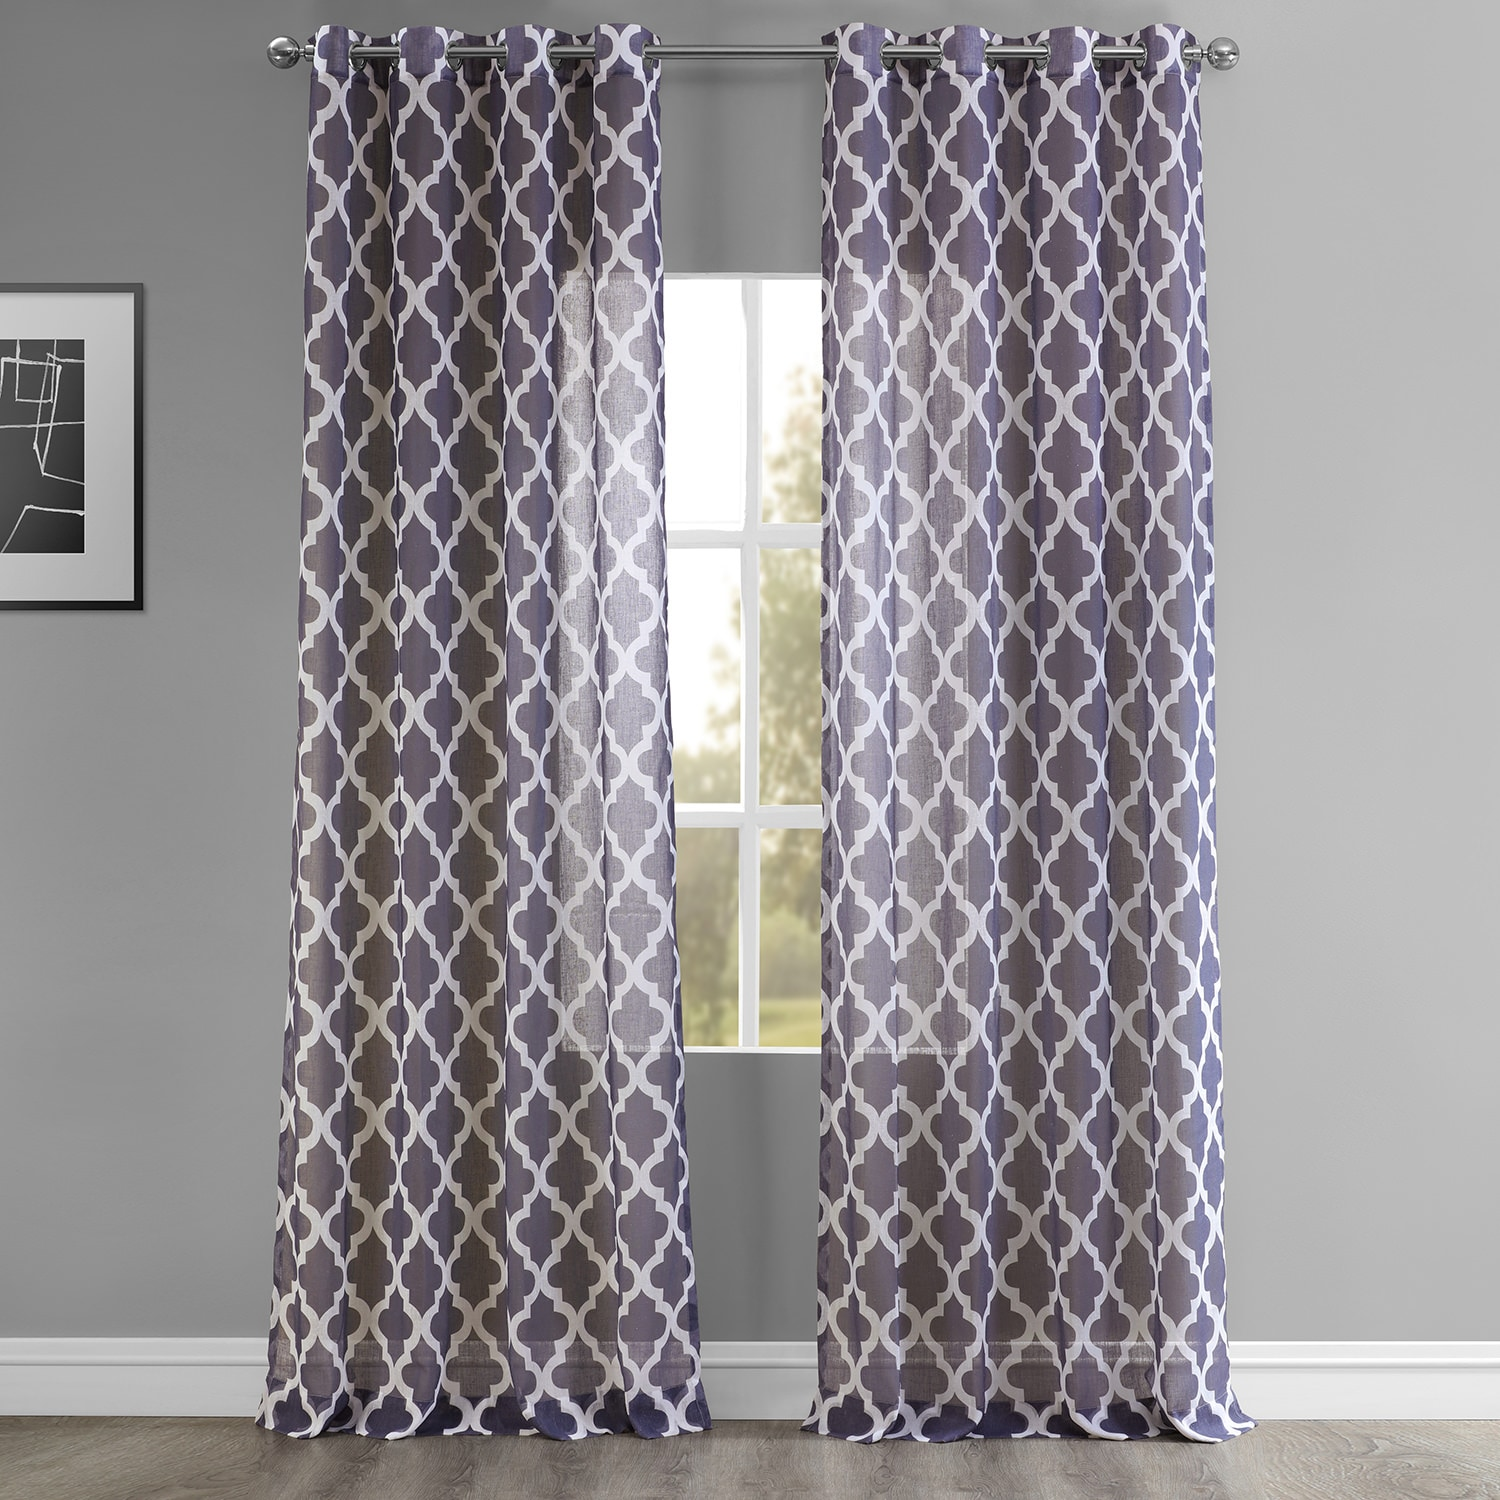 Birmingham Mulberry Grommet Printed Faux Linen Sheer Curtain